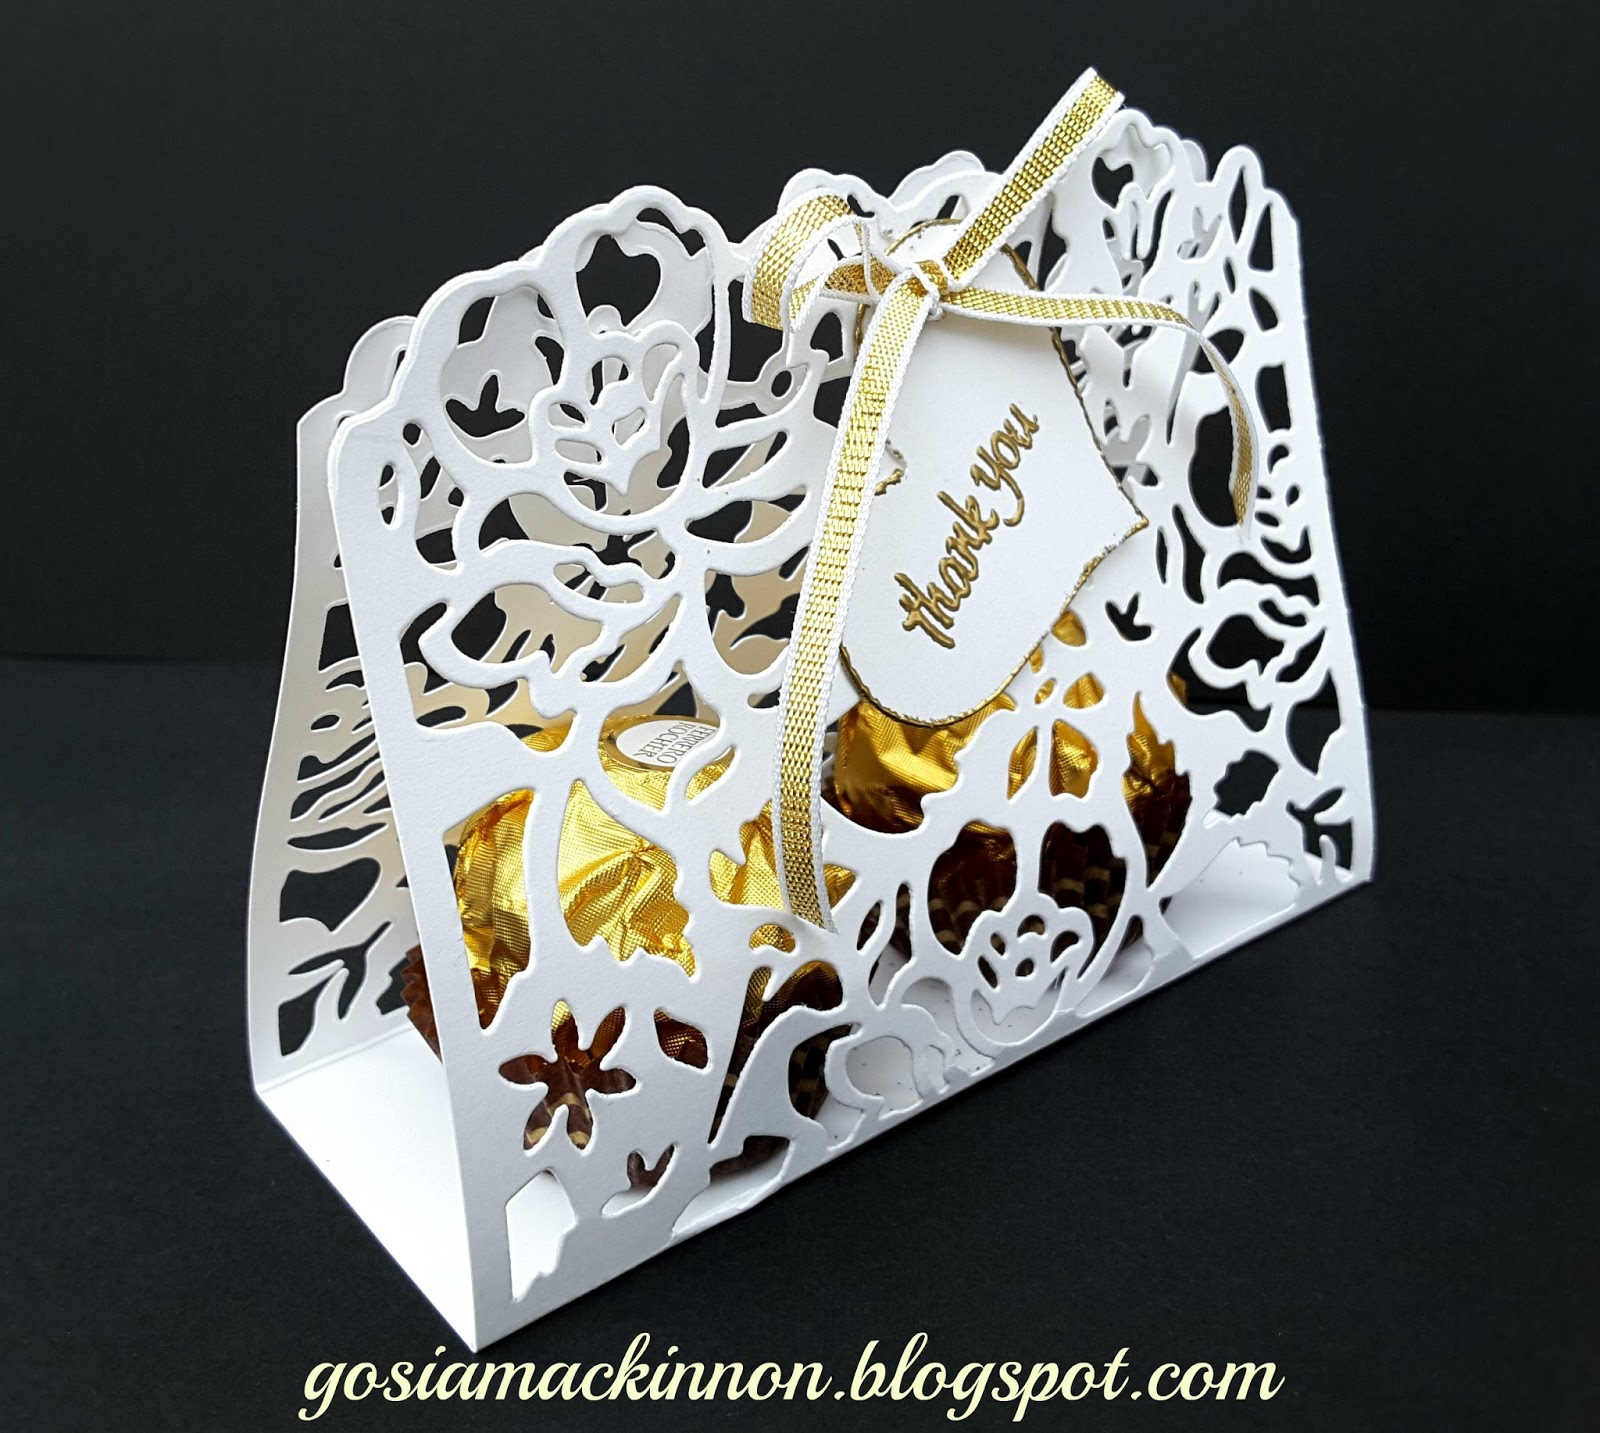 Gift For Wedding Guests Thank You: DETAILED FLORAL THINLITS WEDDING GUEST THANK YOU GIFT BOX